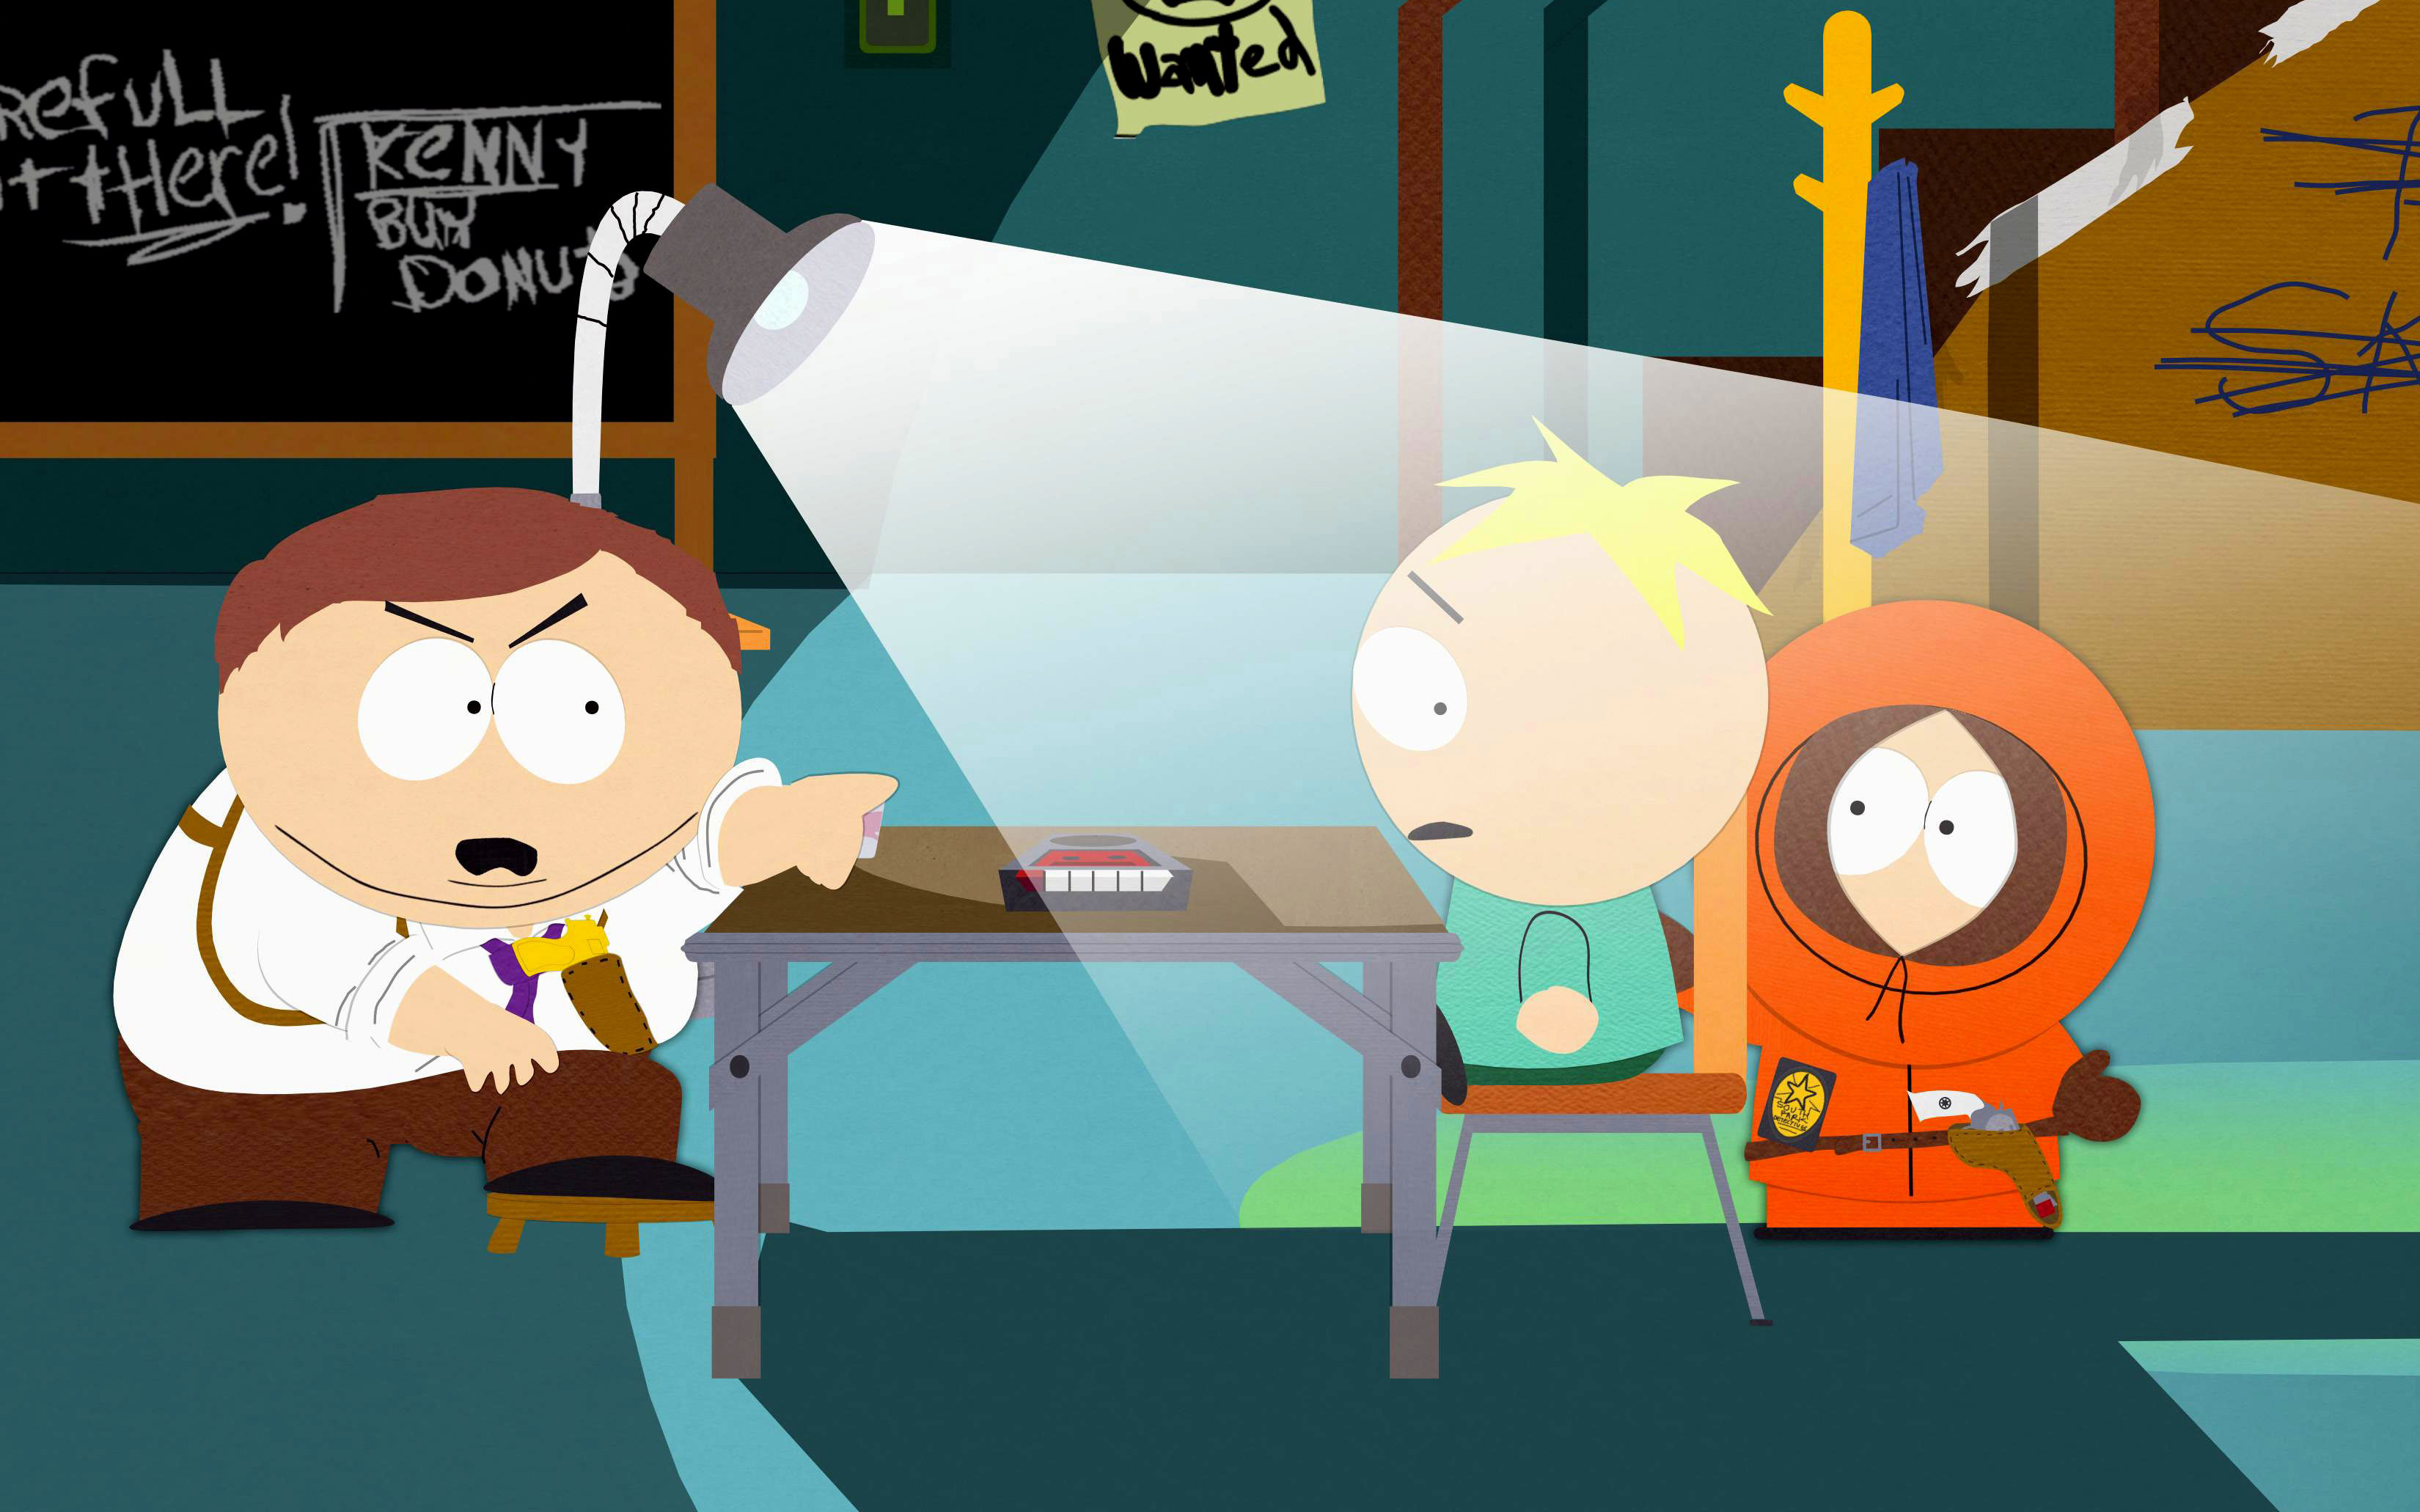 South park kenny wallpaper 73 images - South park wallpaper butters ...